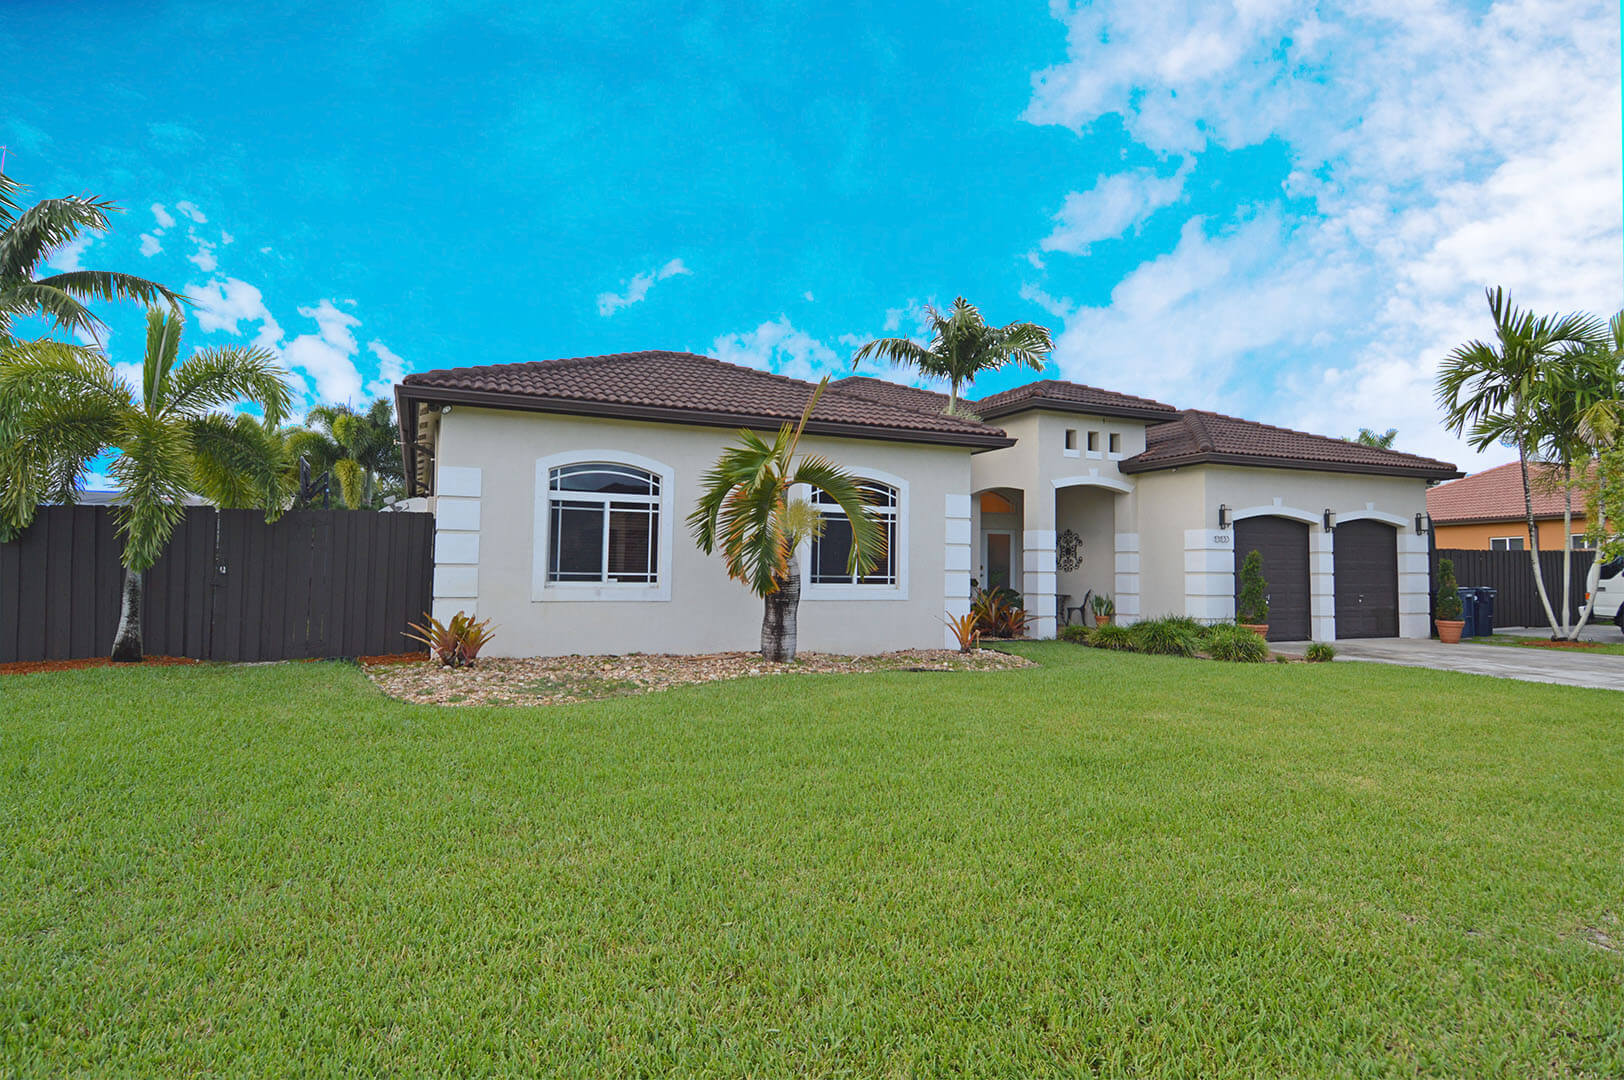 13133-SW-213-Ter-Miami-FL-33177-1-House-Front-1.jpg